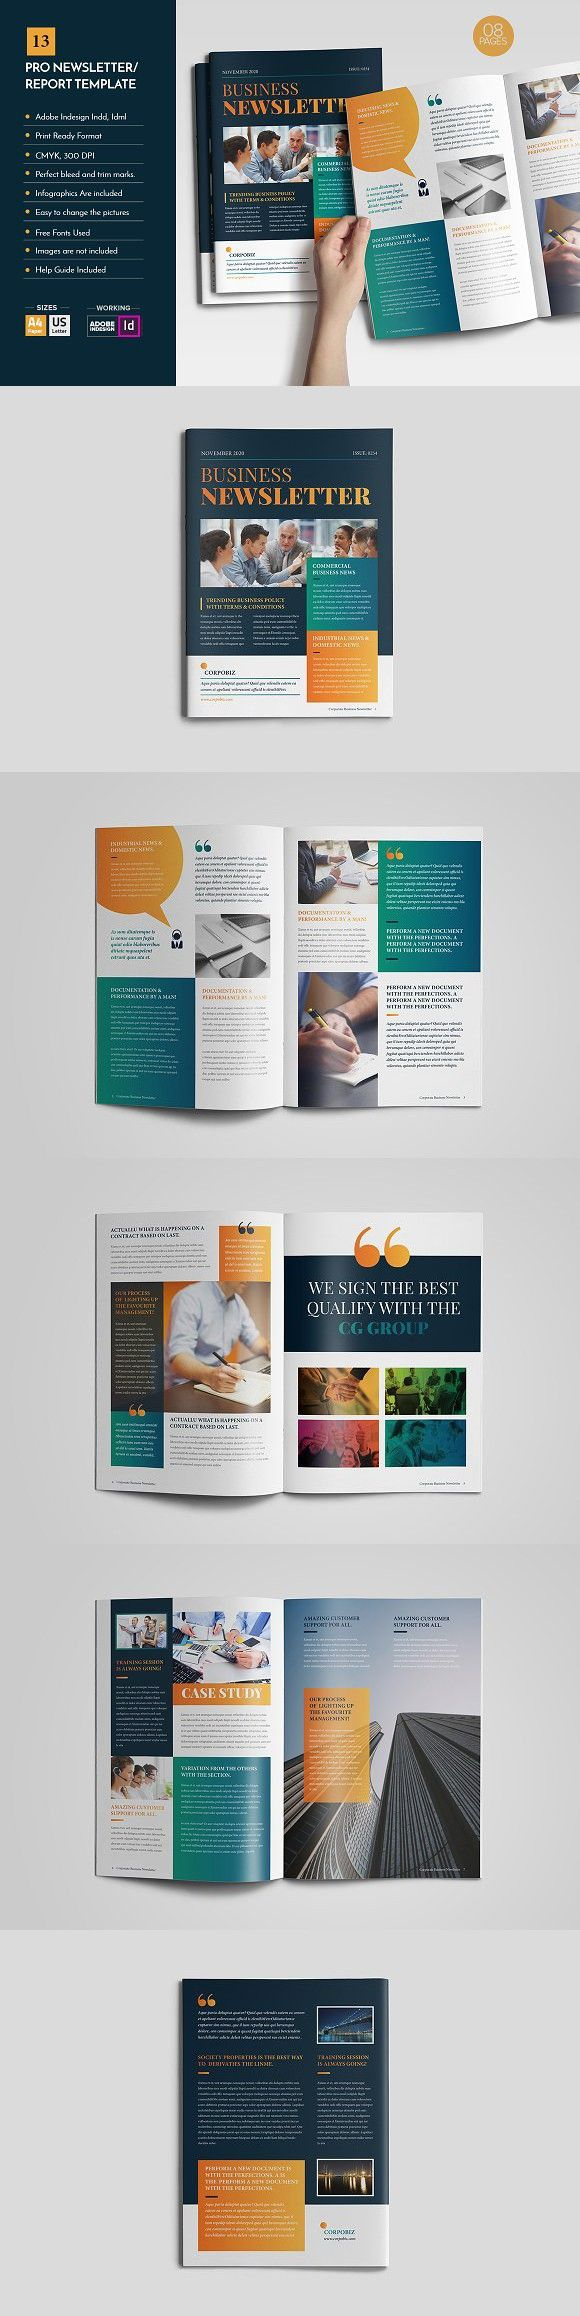 Professional Newsletter Template V12. Newsletter Template. $10.00 ...